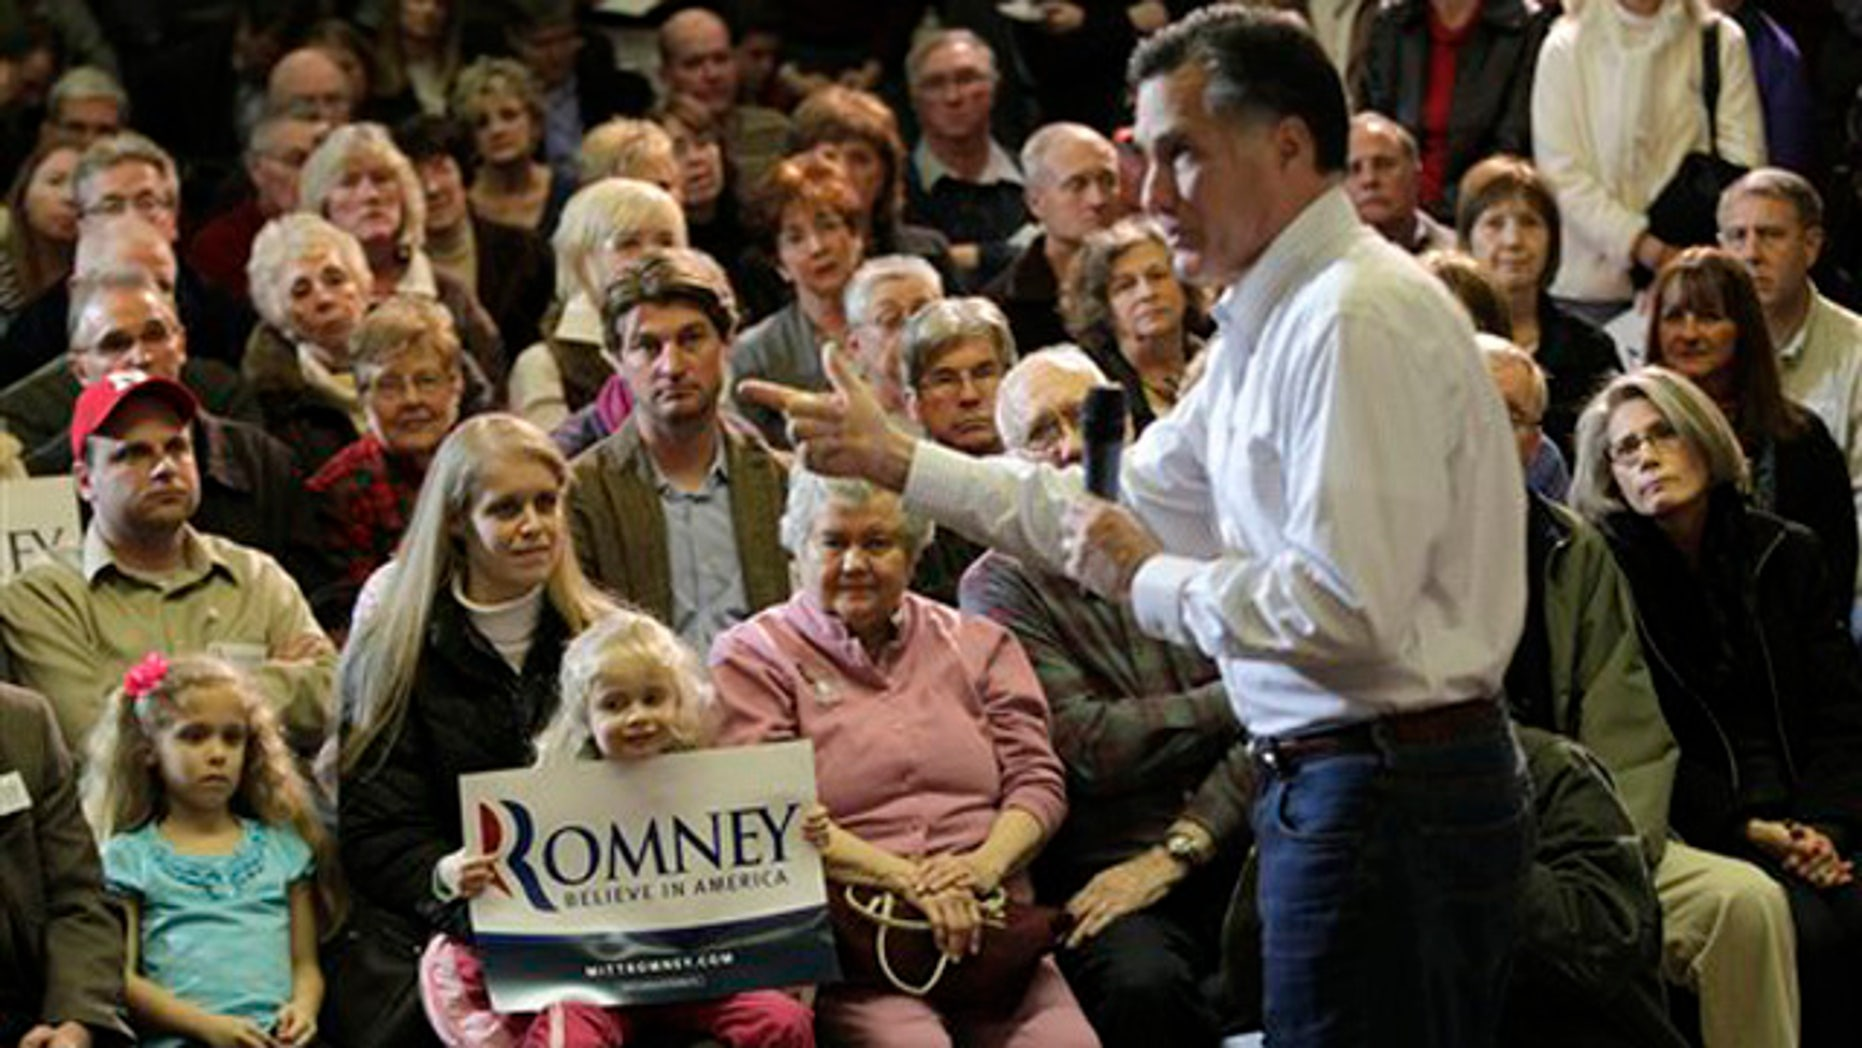 Jan. 1, 2012: Mitt Romney speaks to a packed room during a campaign appearance at the Bayliss Park Hall in Council Bluffs, Iowa.